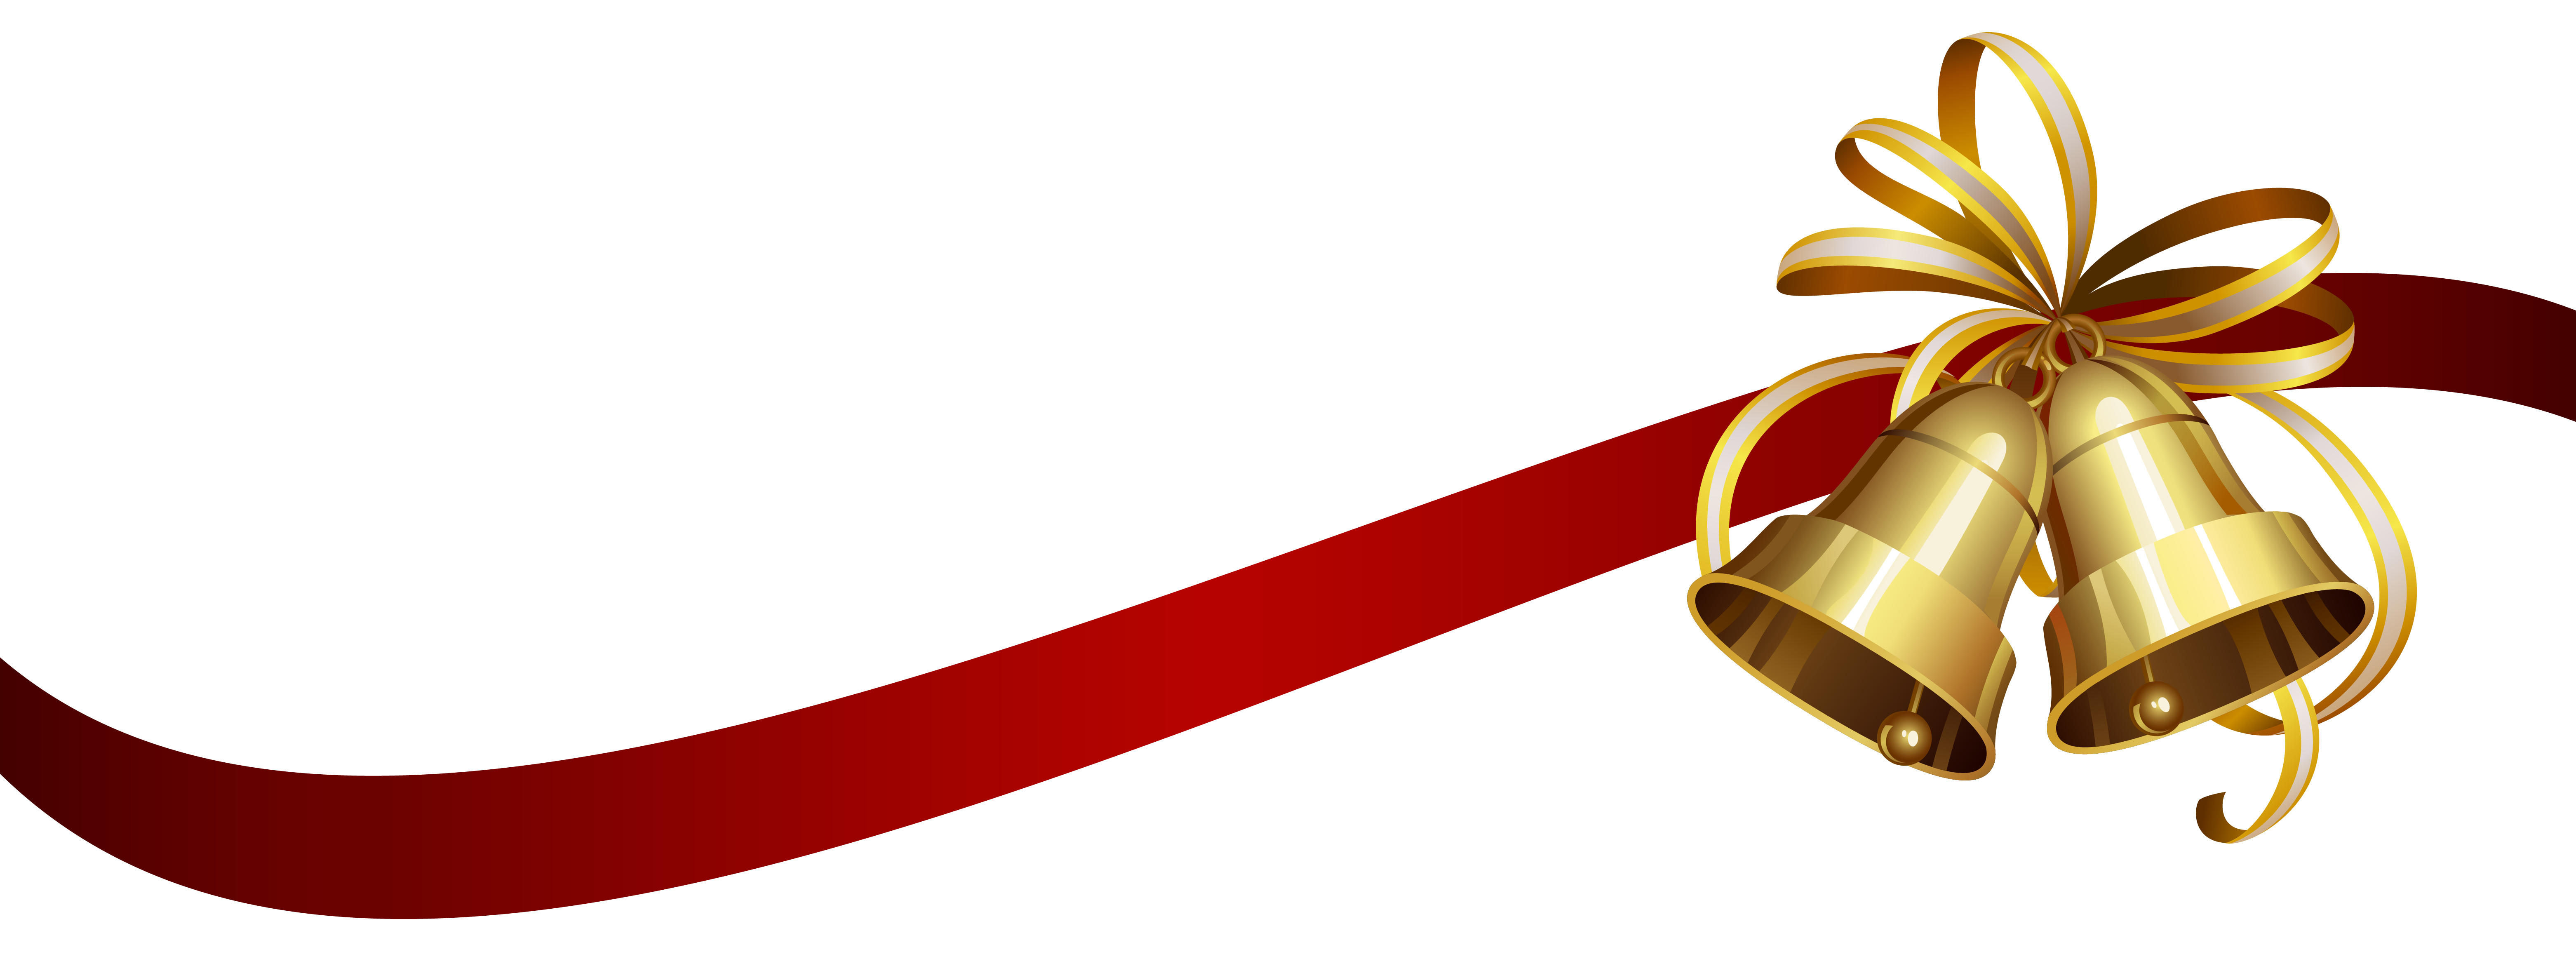 Christmas ribbon border png. Bells with transparent clip